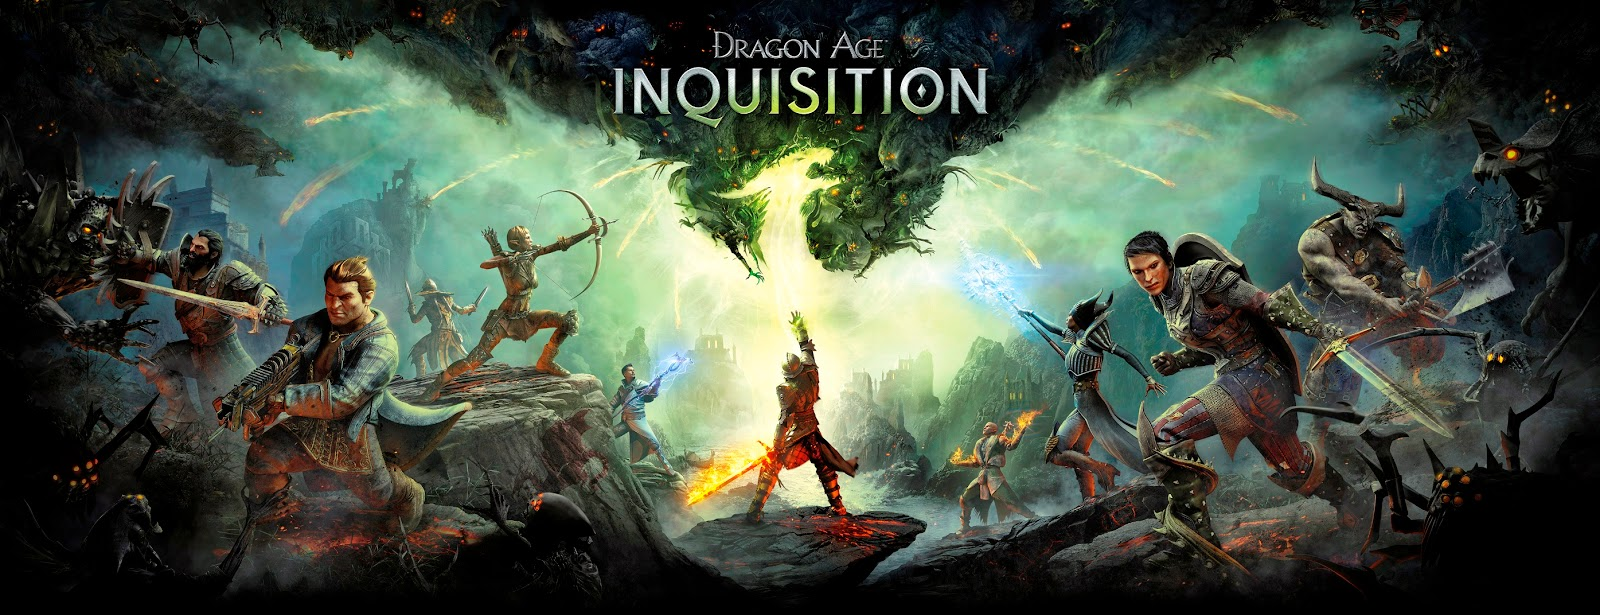 http://psgamespower.blogspot.com/2014/11/dragon-age-inquisition-ja-disponivel.html